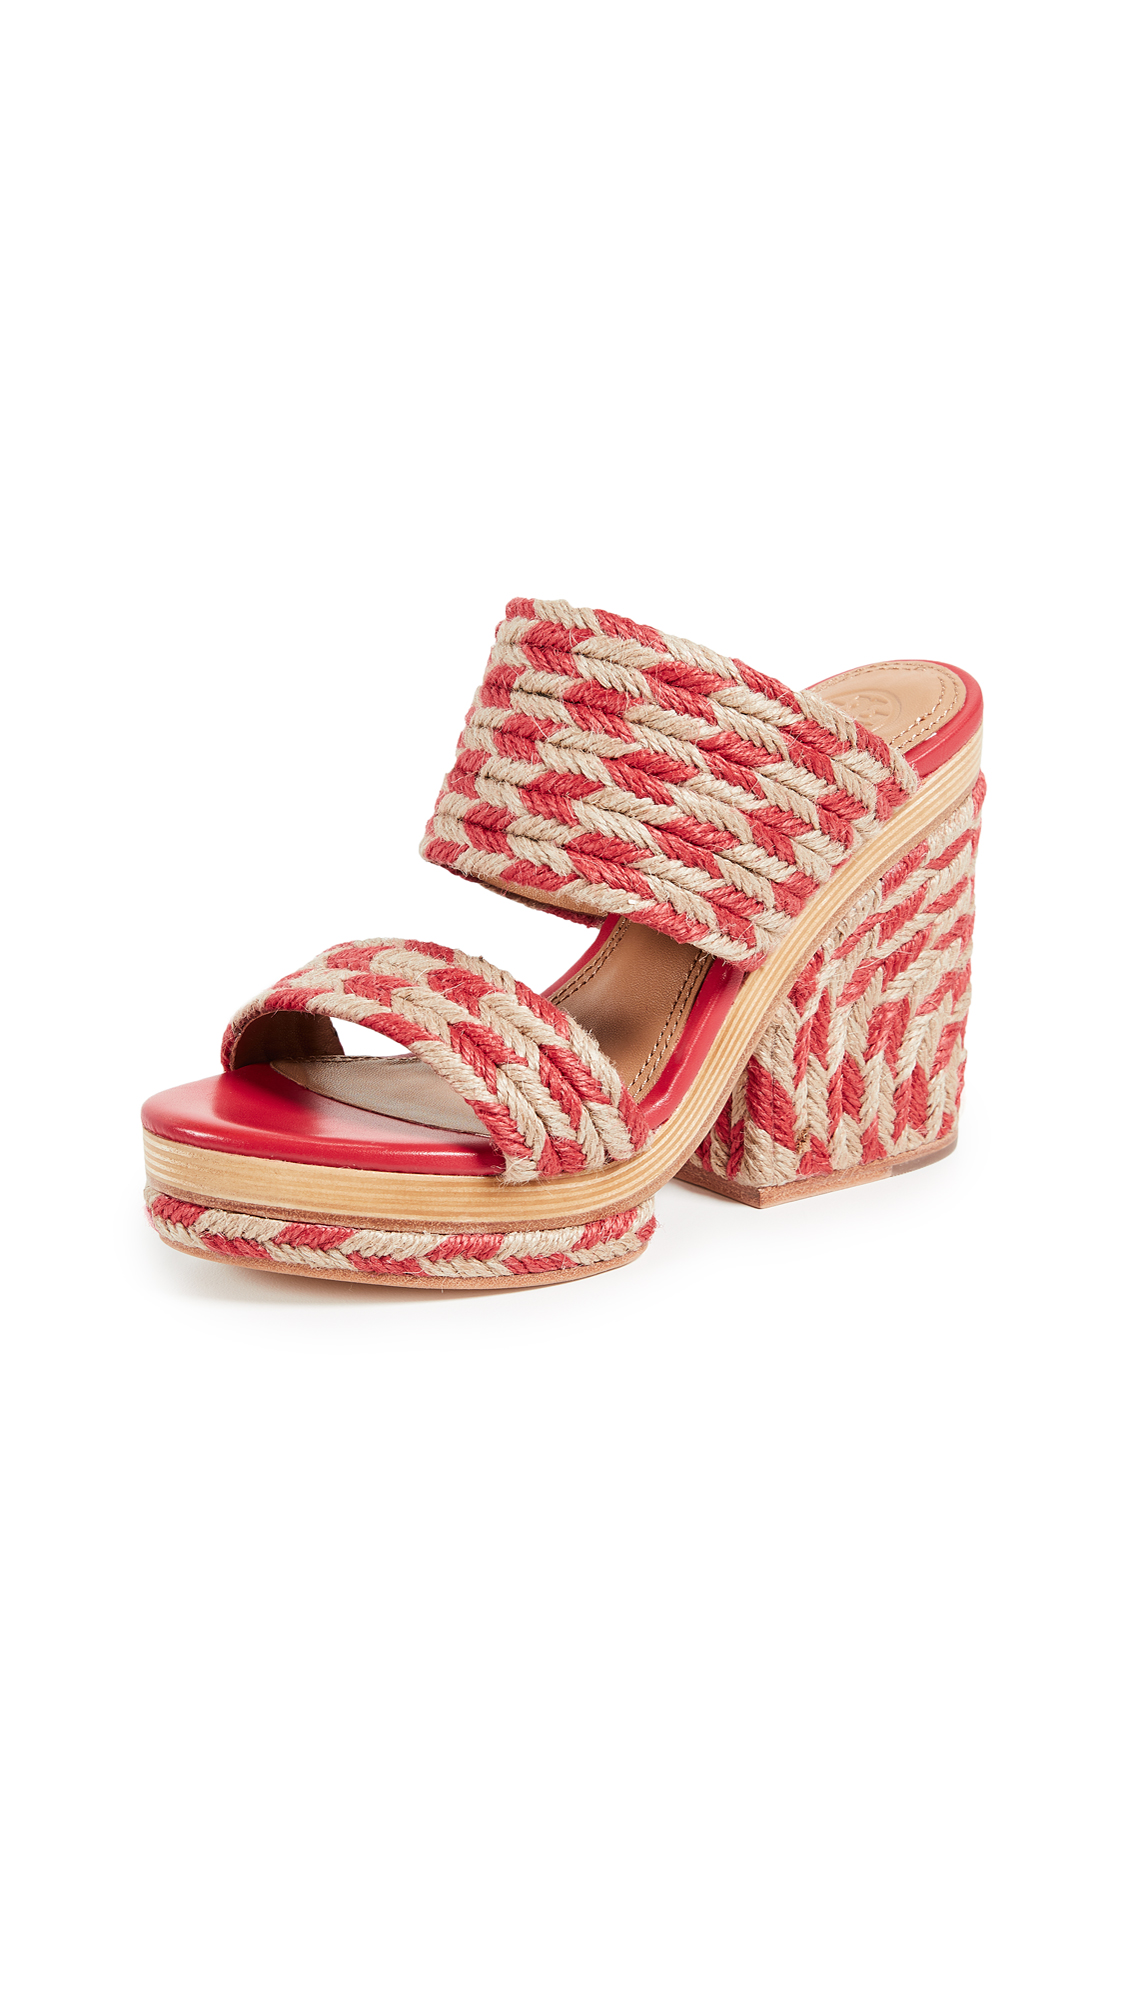 Tory Burch Lola 100mm Sandals - Poppy Orange/Perfect Ivory